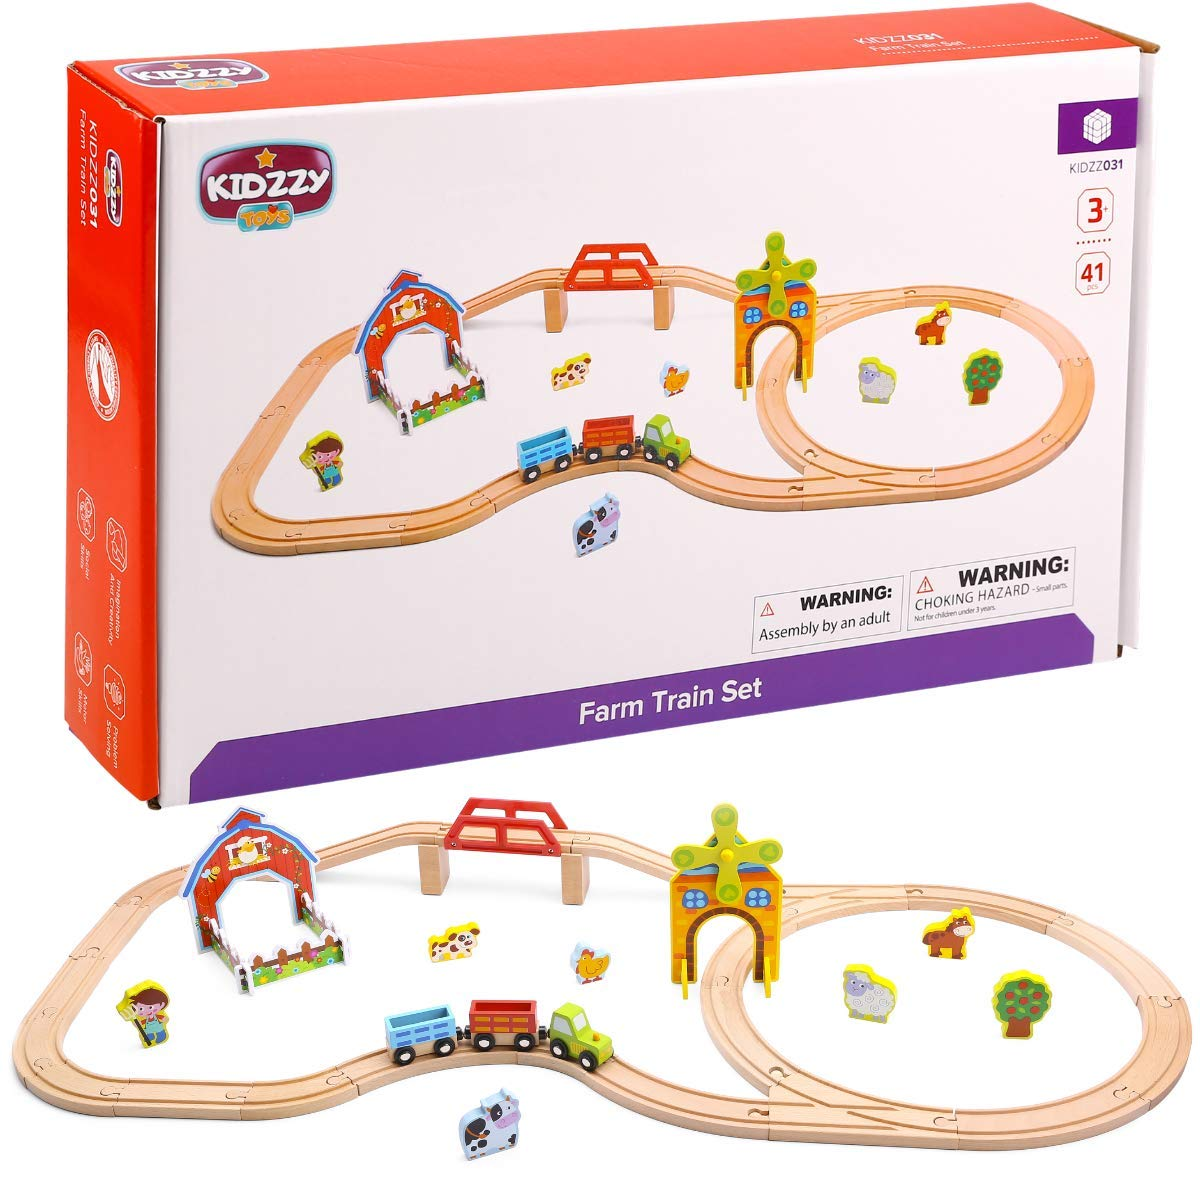 Top 9 Best Train Sets for Toddlers Reviews in 2021 10